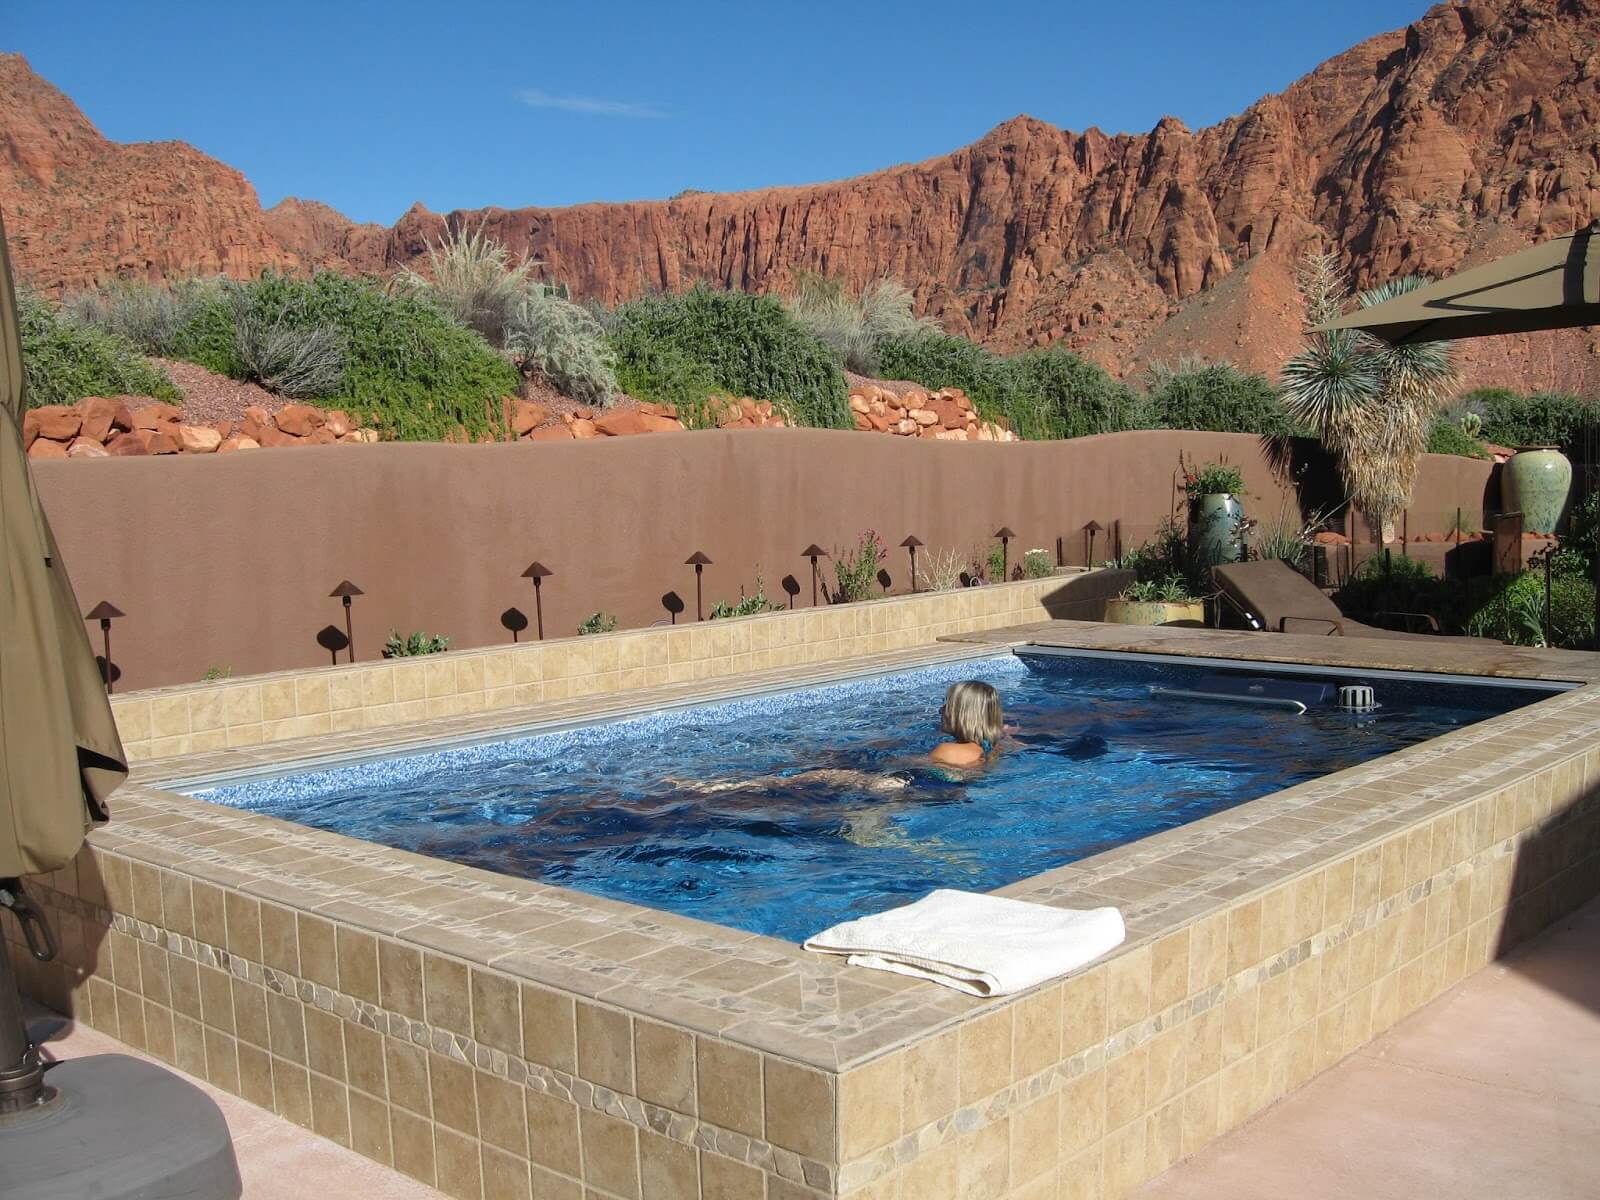 a swimmer in an Endless Pool in Utah